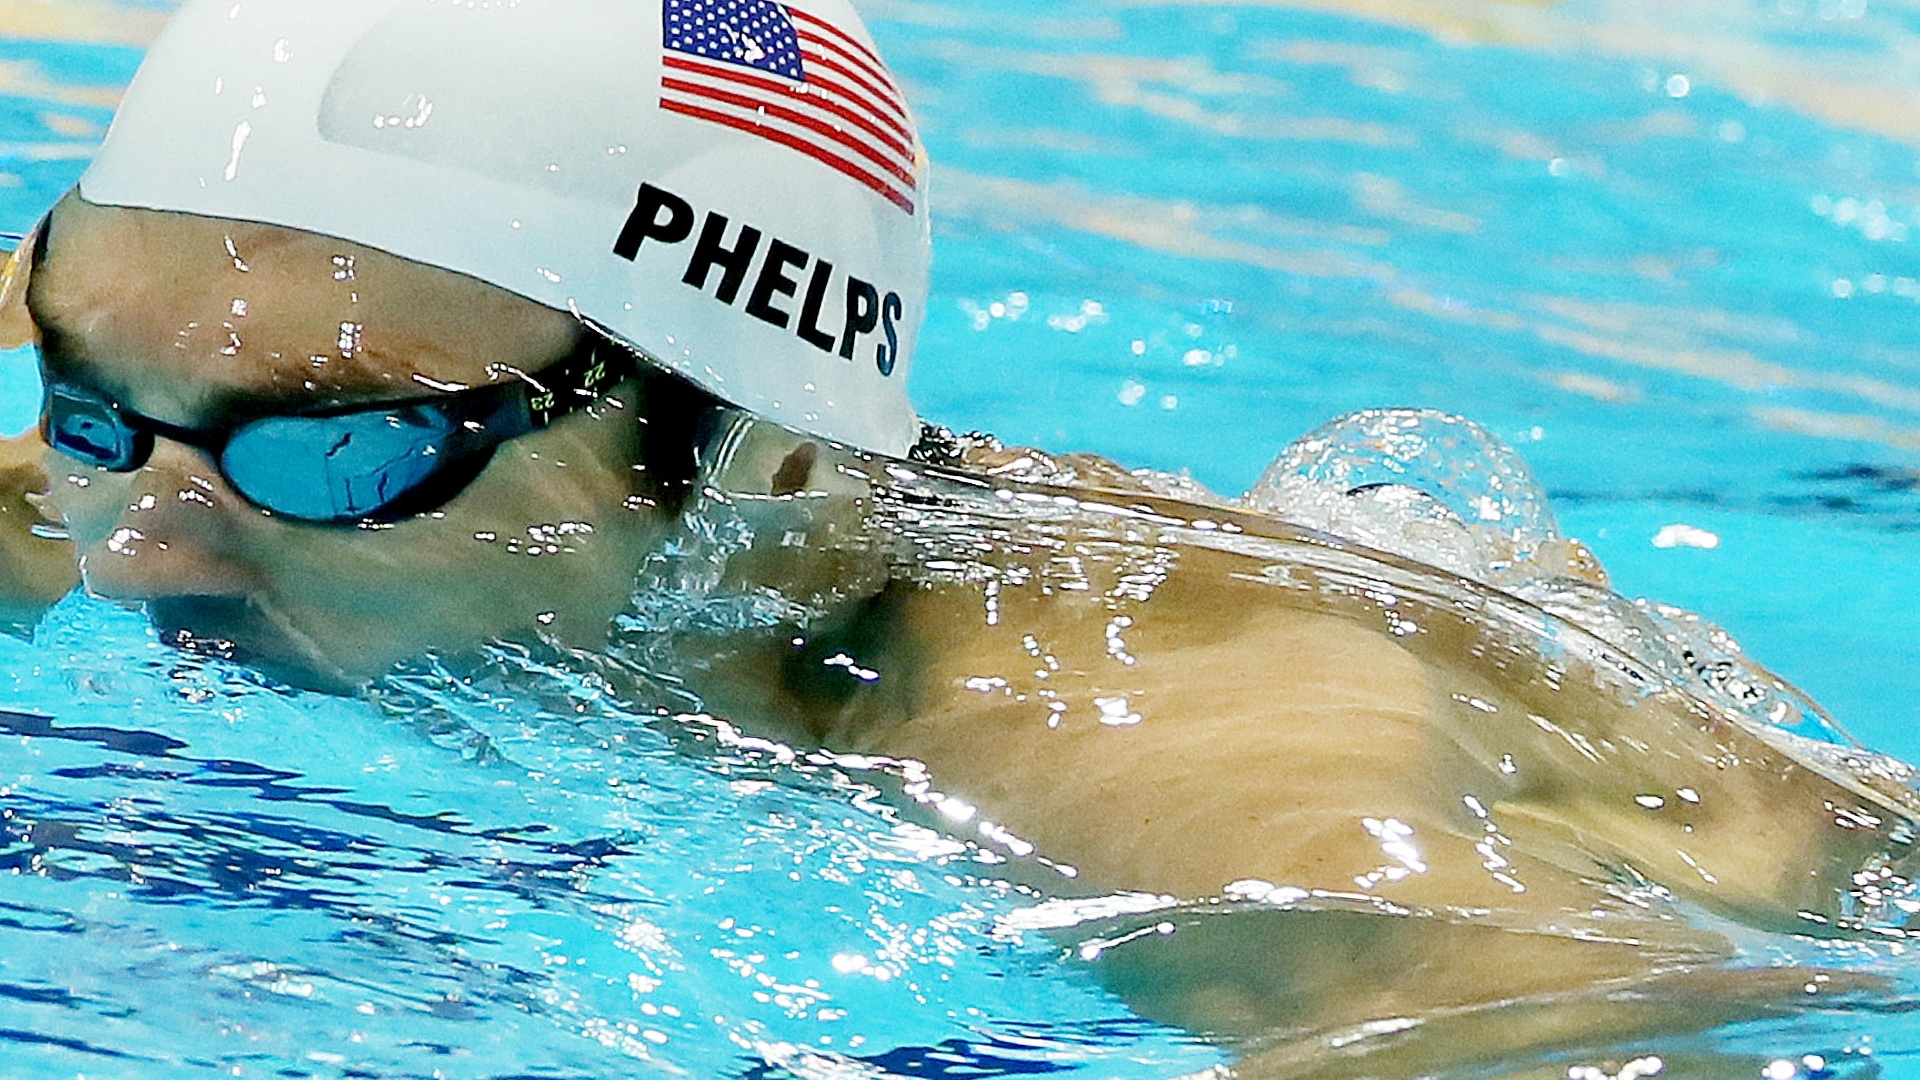 Michael Phelps terminou em segundo lugar na sua bateria dos 200 m medley nesta quarta-feira em Londres